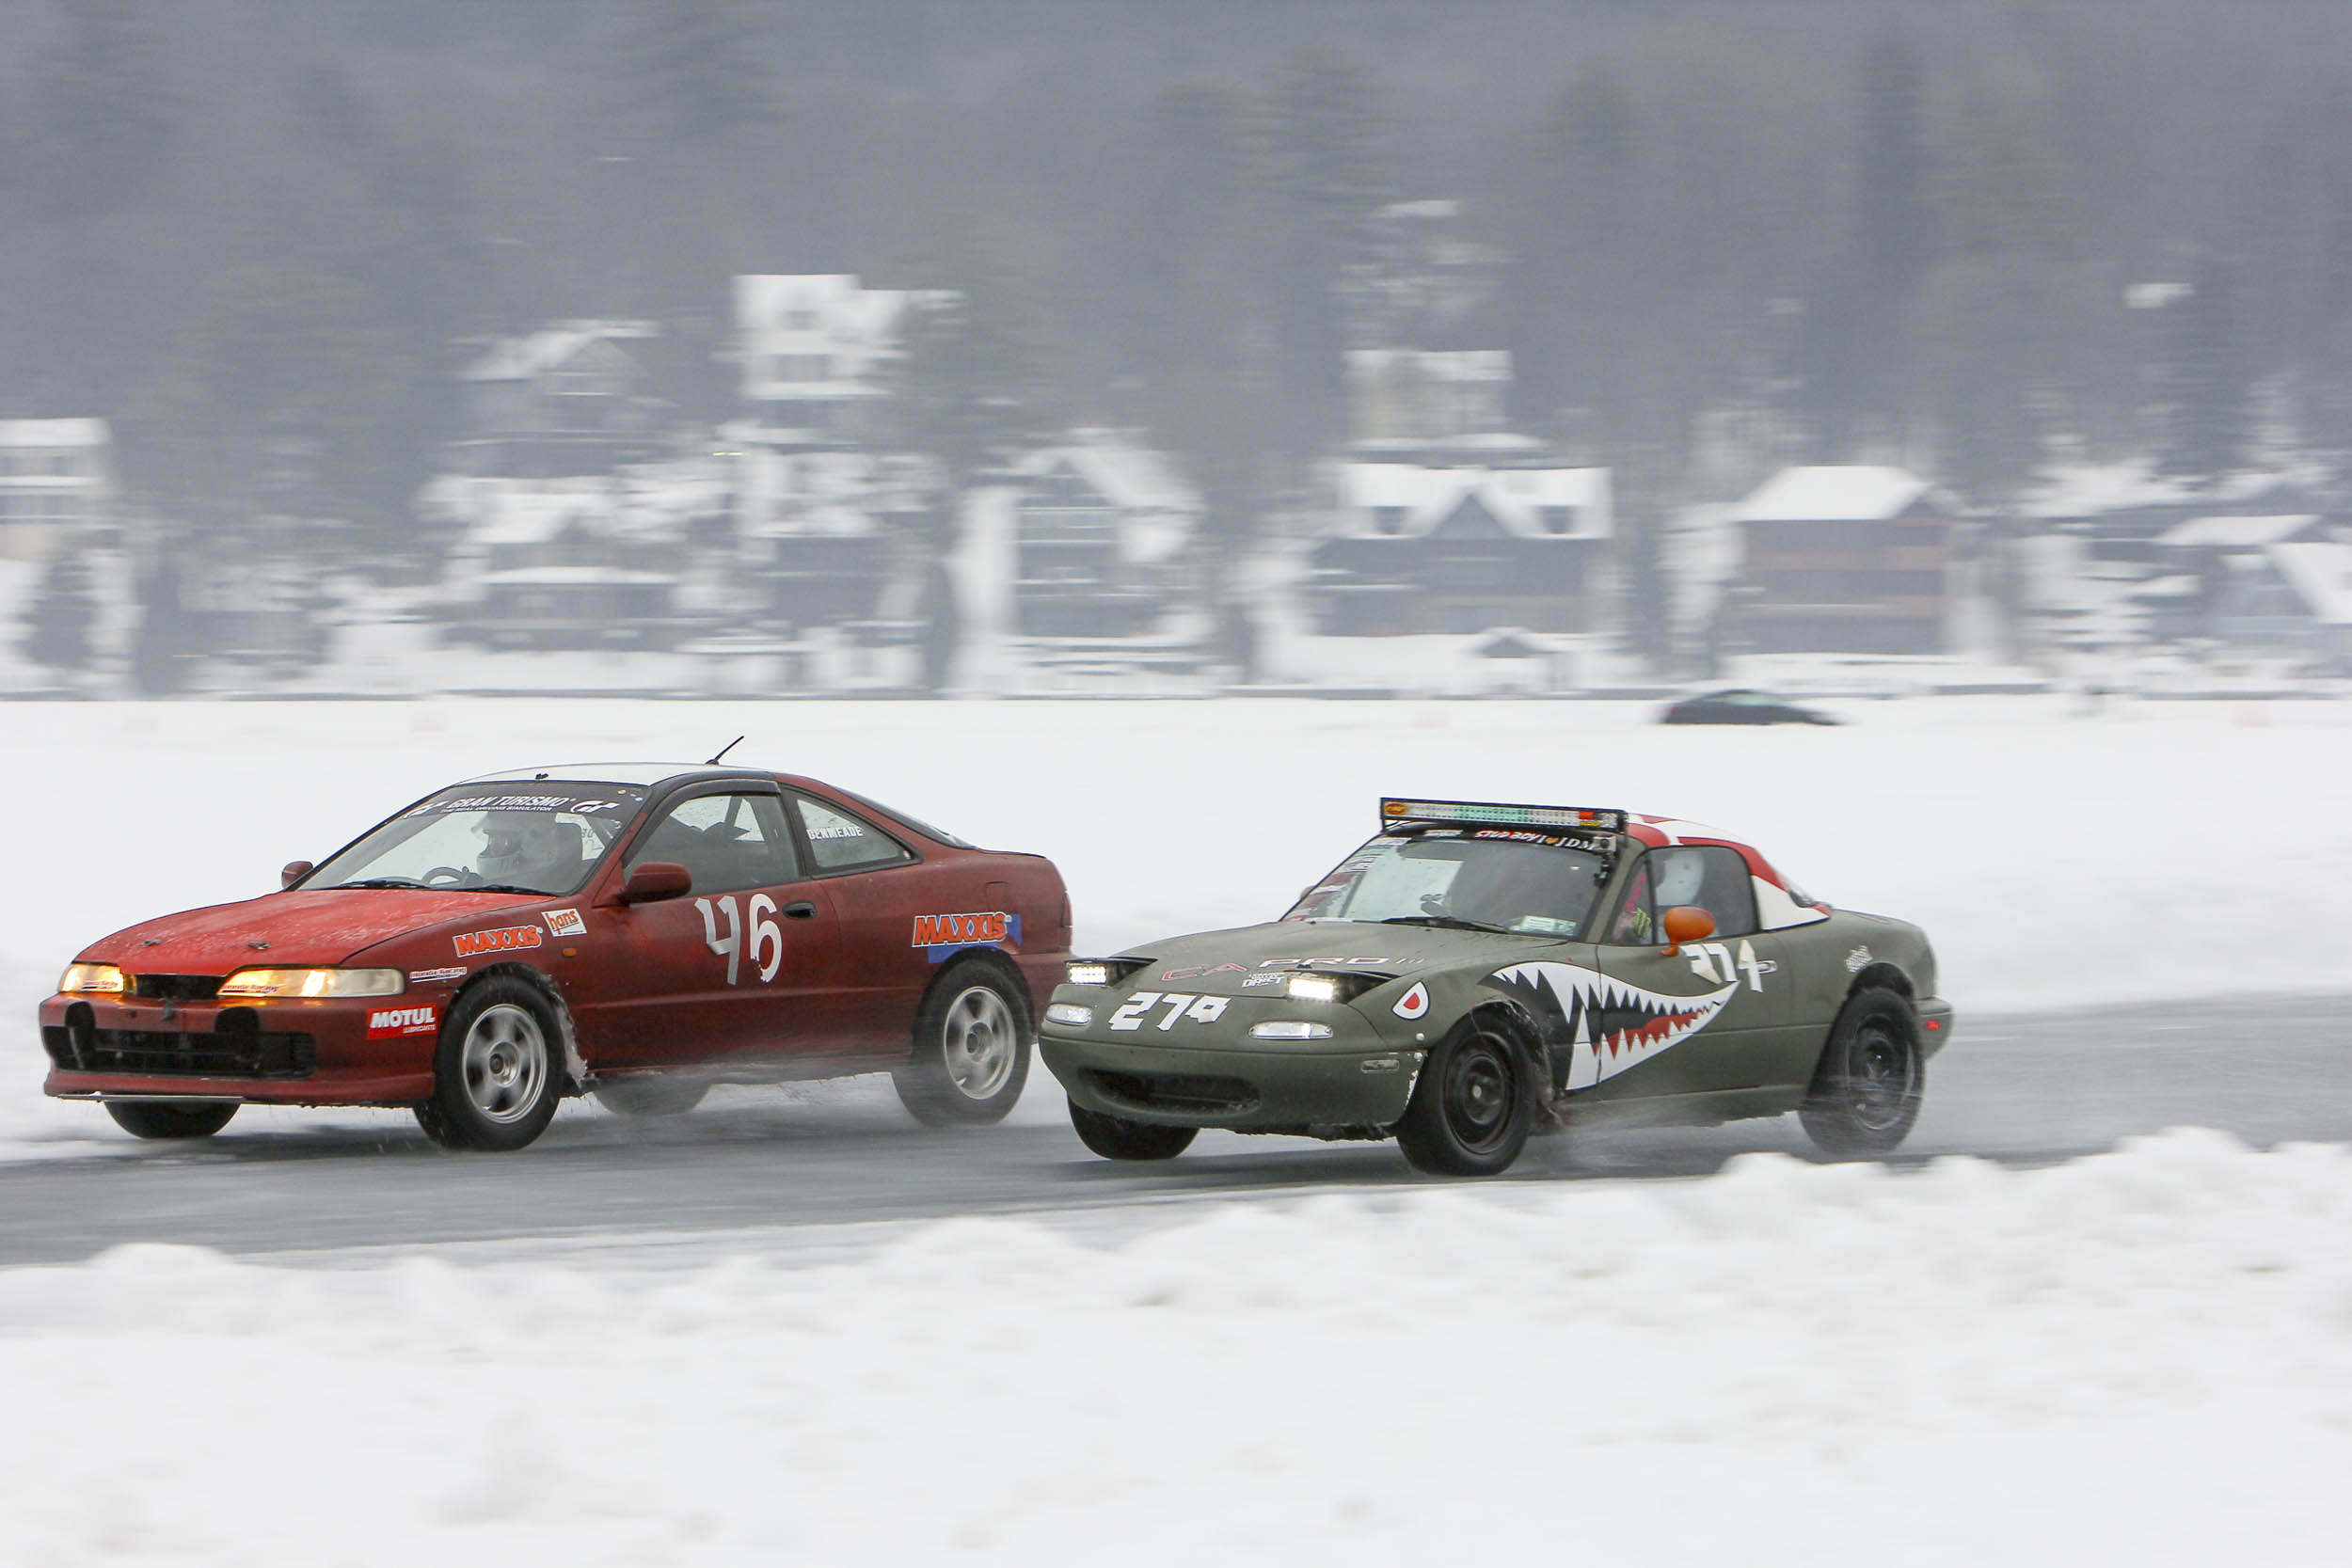 ice racing miata